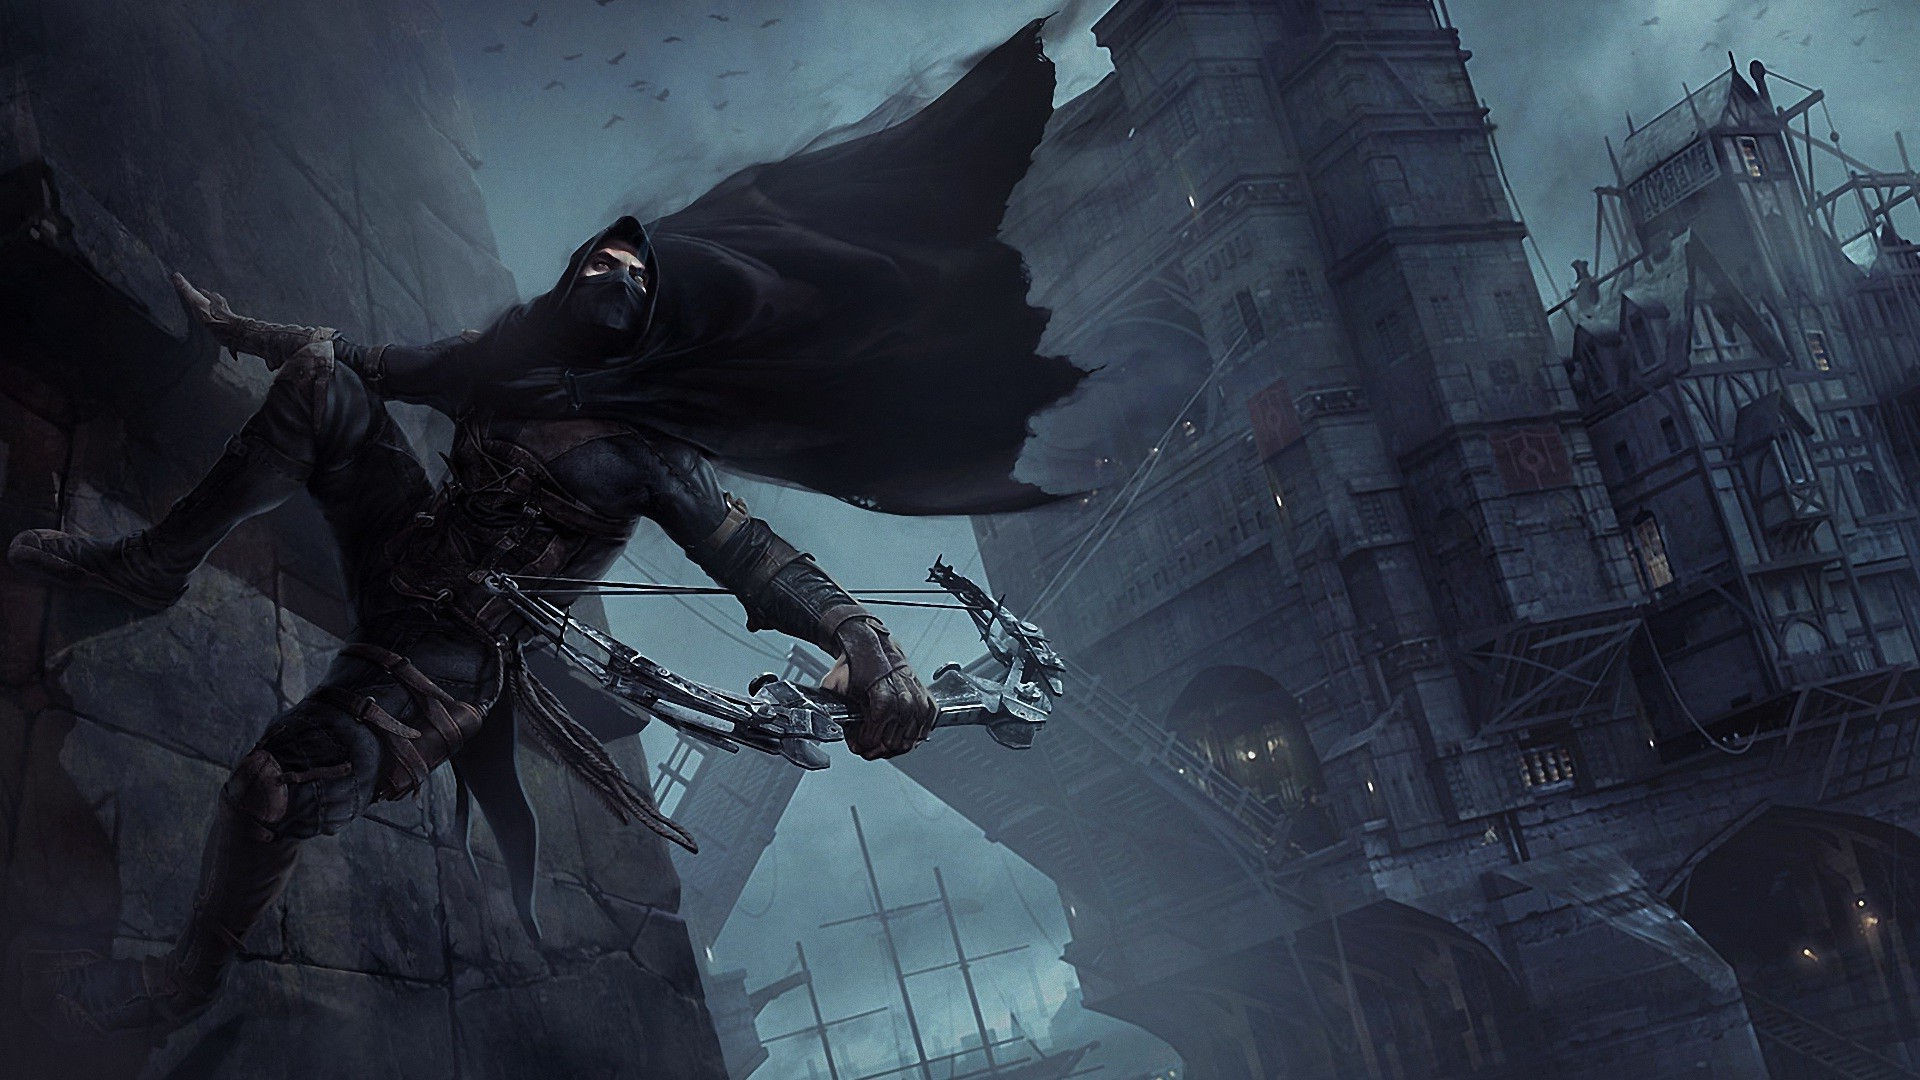 Best images and wallpapers of thief game 2014.